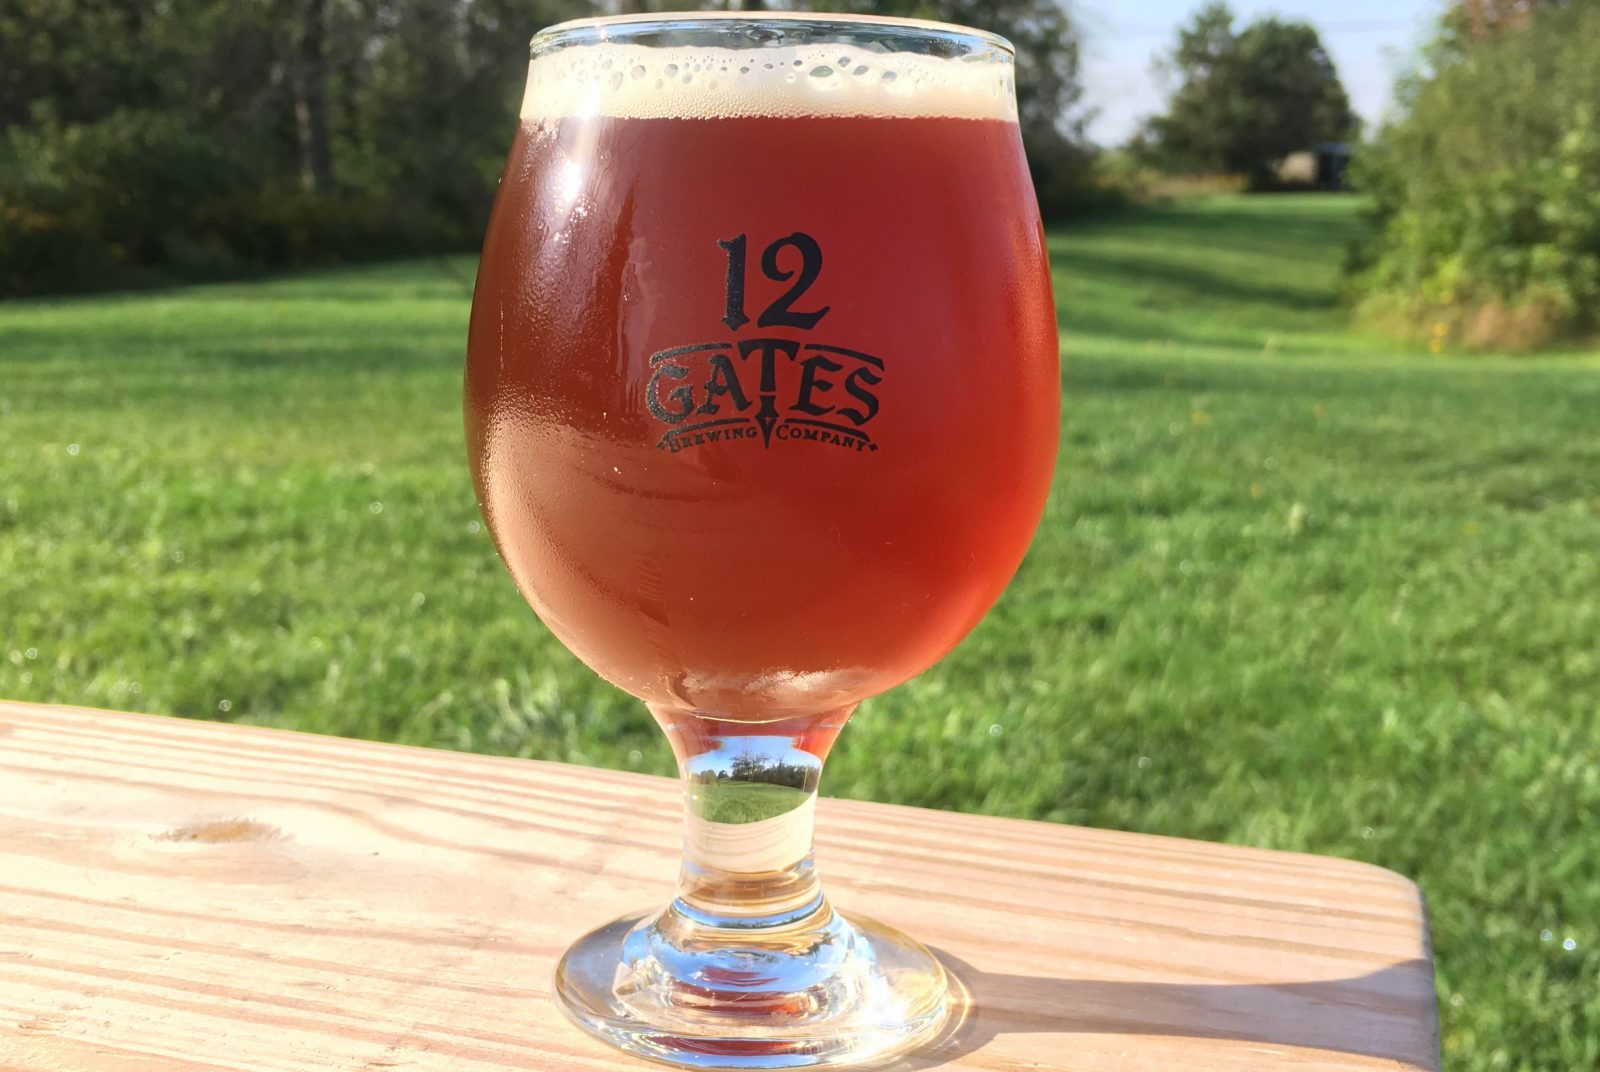 Try a glass of Ales for ALS XXIPA from 12 Gates during Beer Week, which runs through Oct. 2.